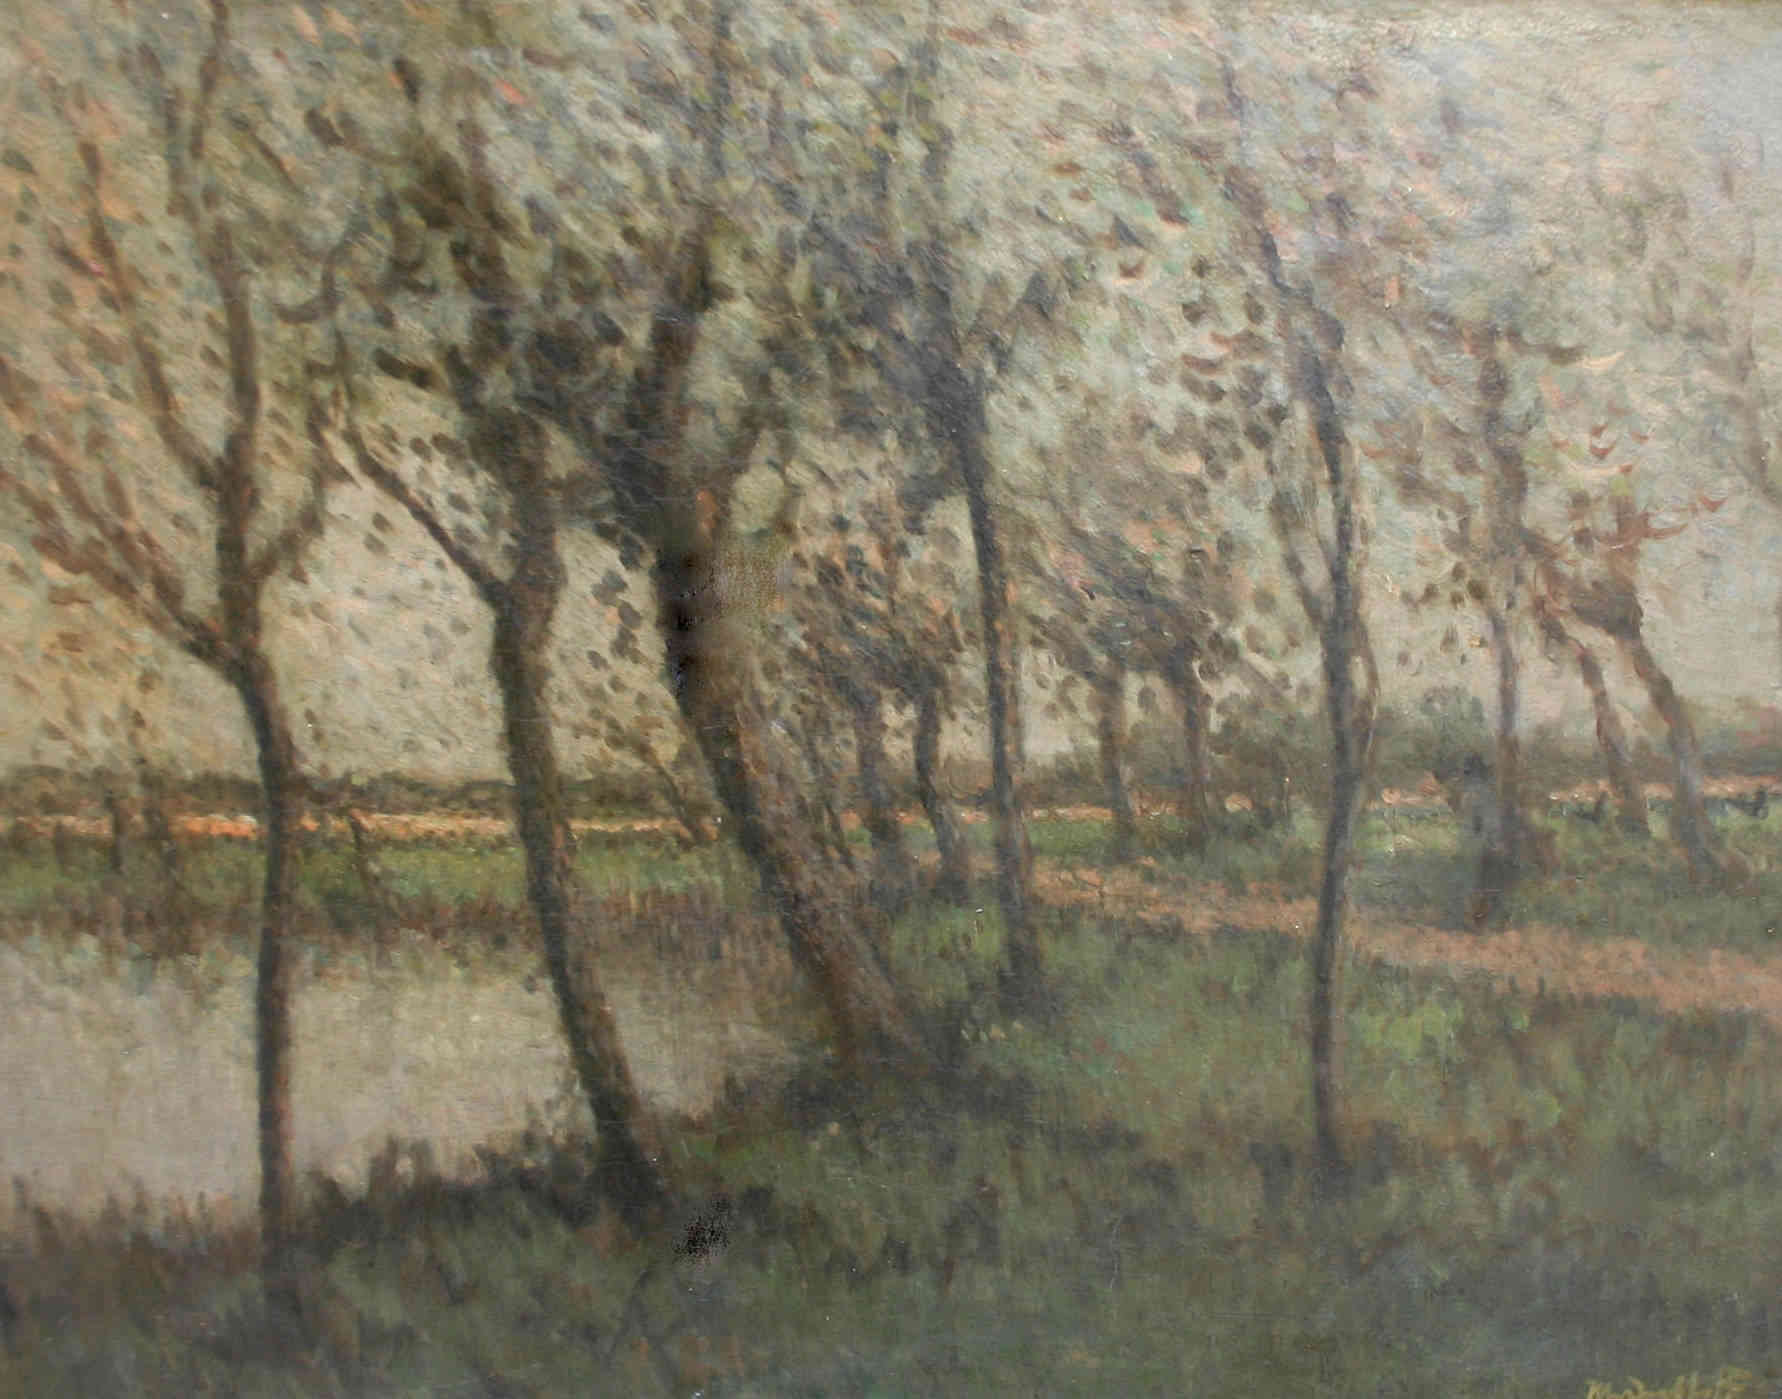 Bomen langs het water Hermanius Anthonius (Henri) van Daalhoff (1867-1953) - Kunsthandel Studio 2000